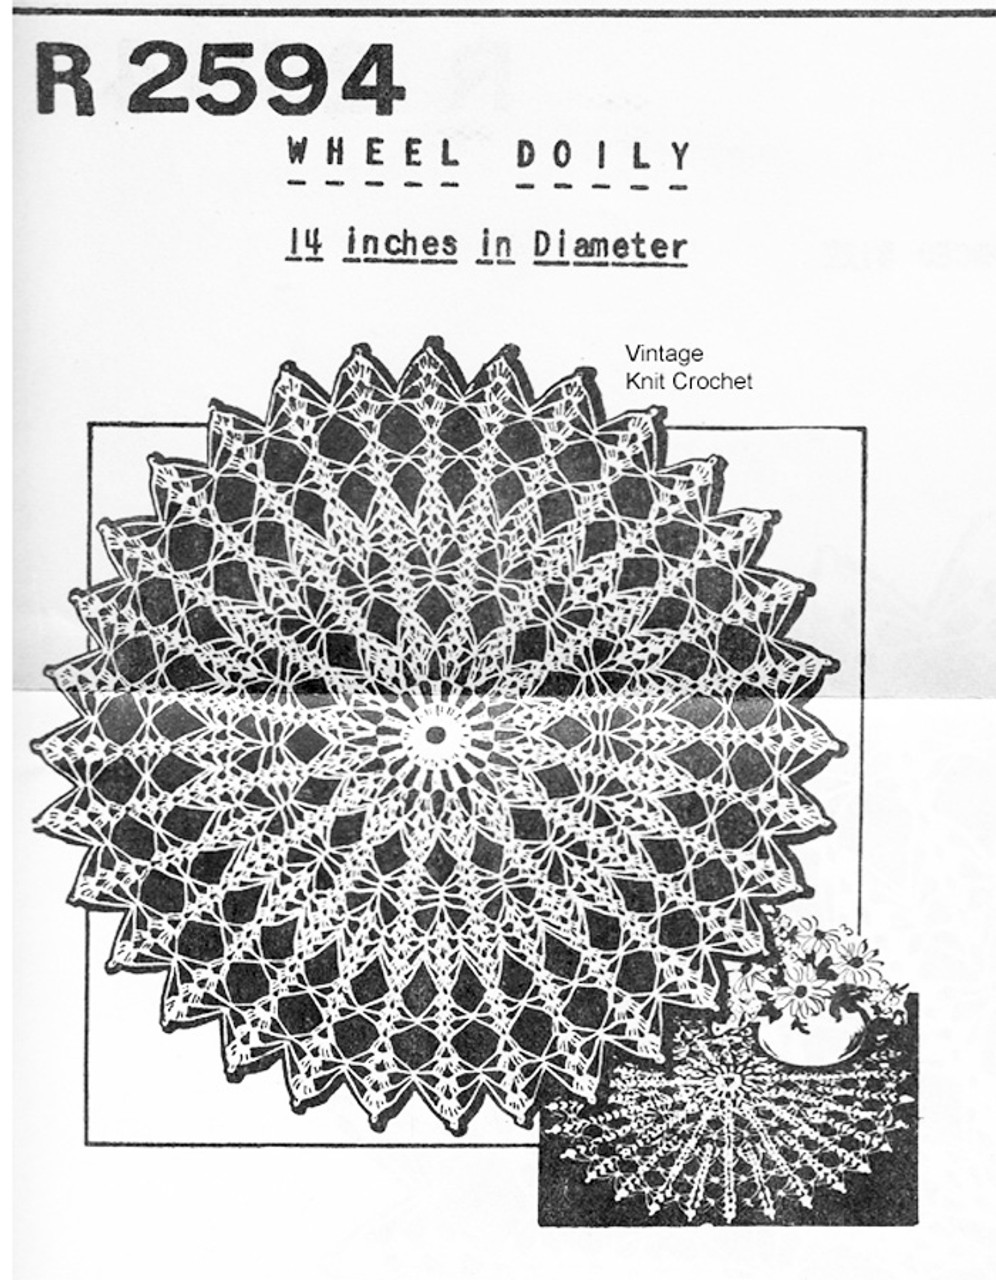 Vintage Crochet Wheel Doily Pattern R-2594 Mail Order